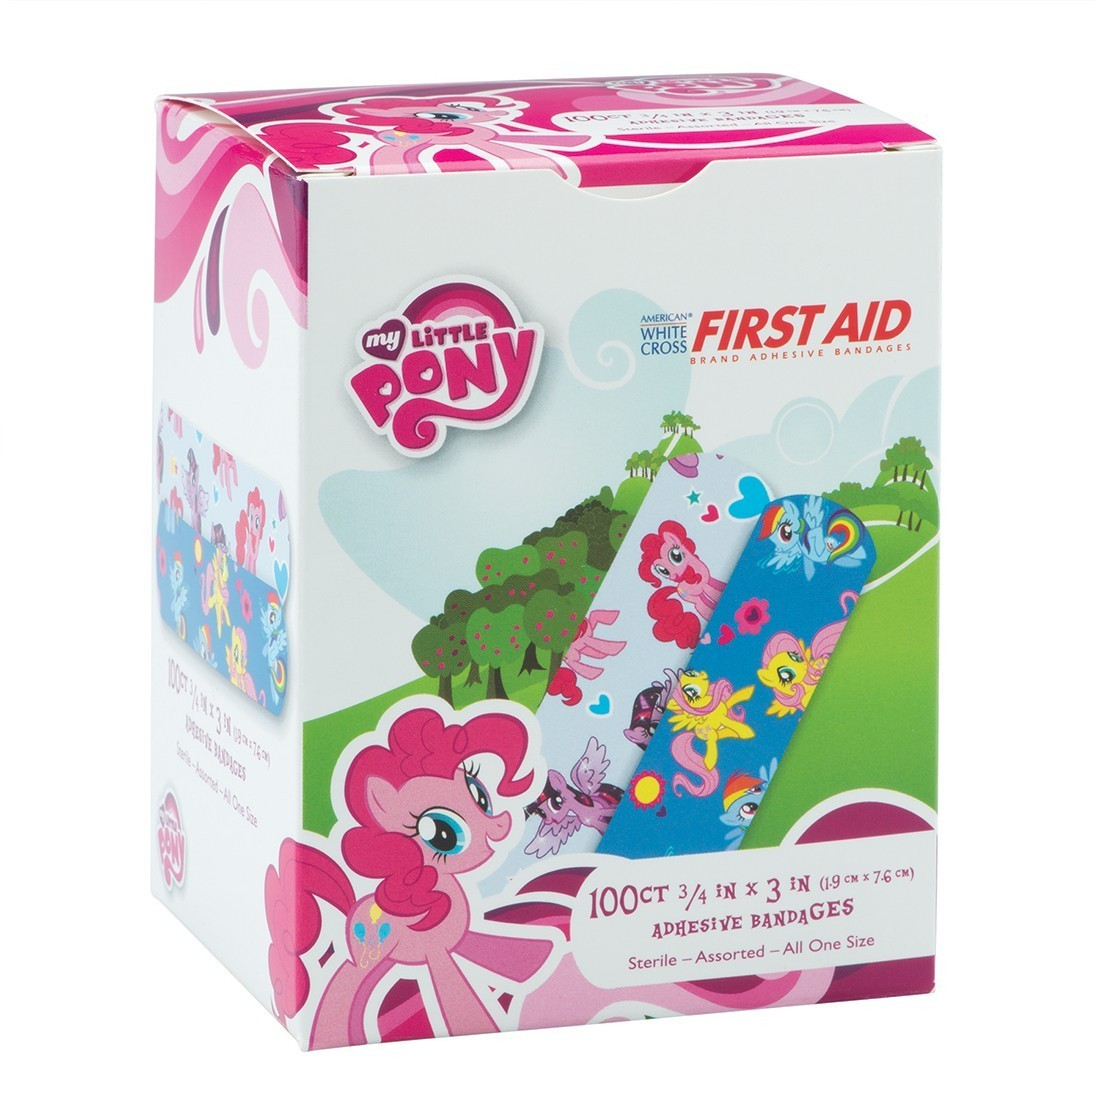 First Aid My Little Pony Bandages - Case [image]